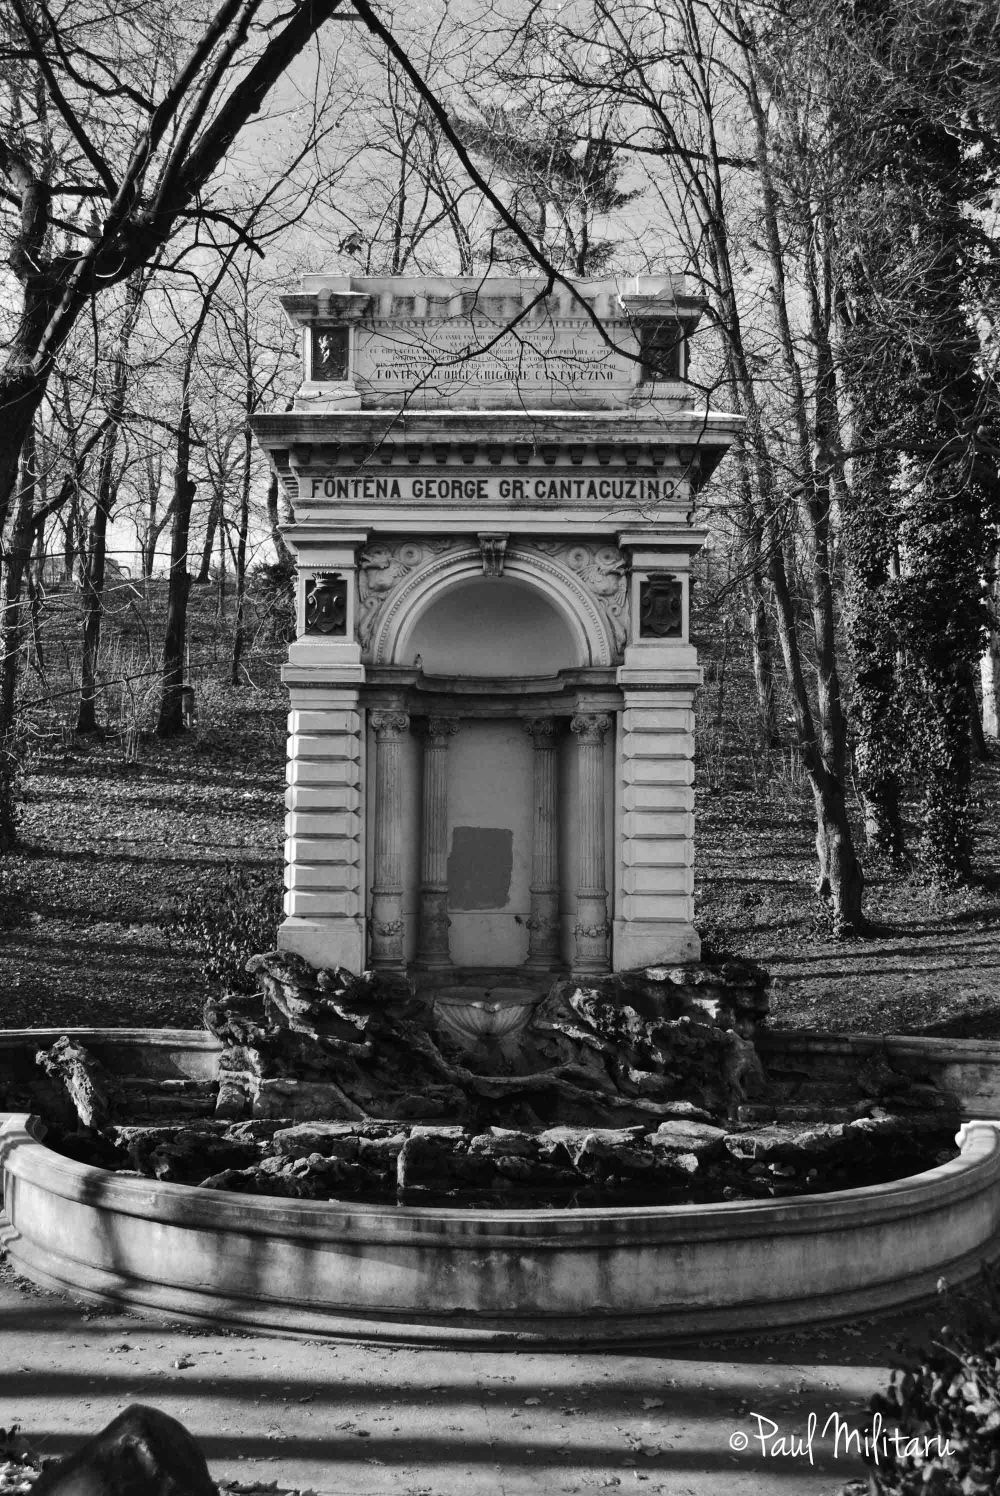 art - the Cantacuzino fountain in the Carol Park